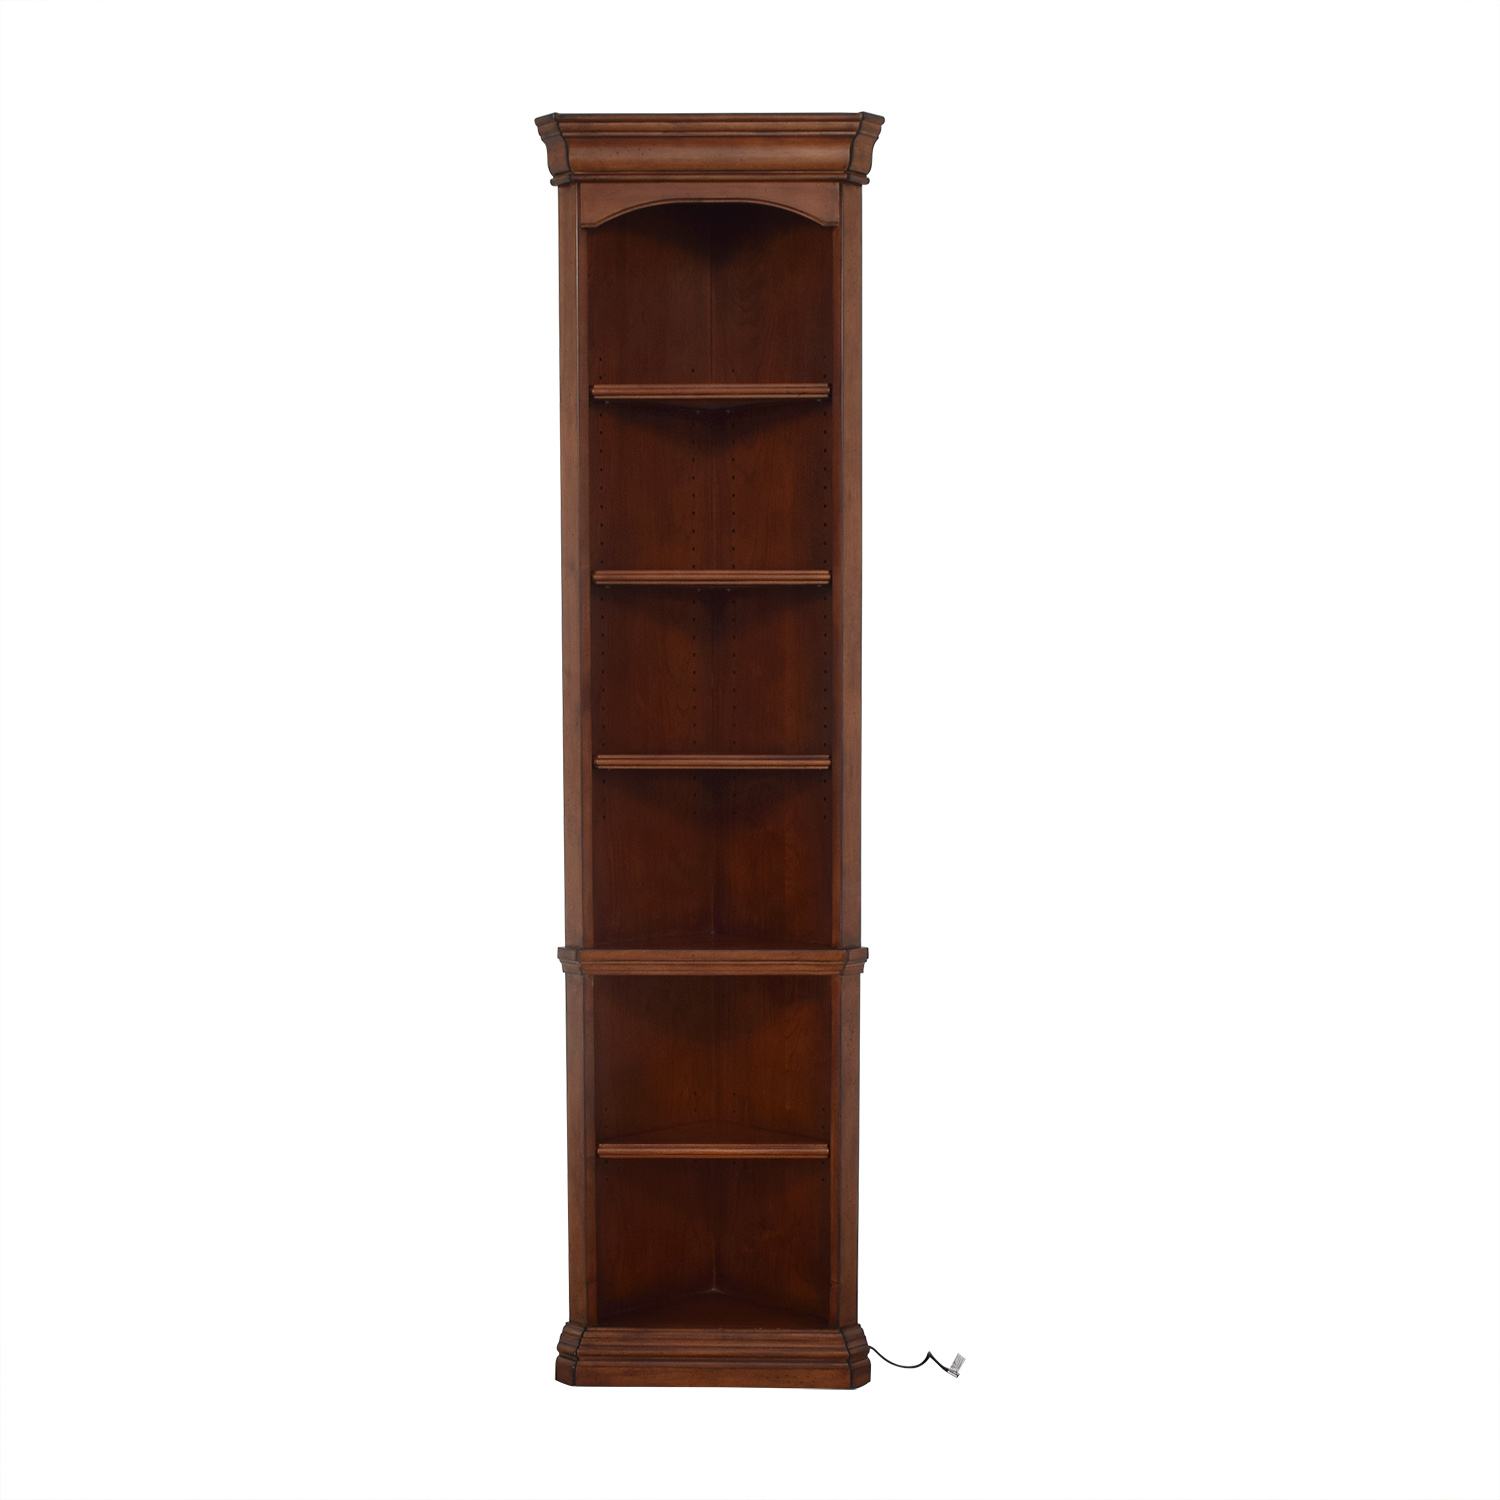 buy Hooker Furniture Hooker Corner Bookcase online